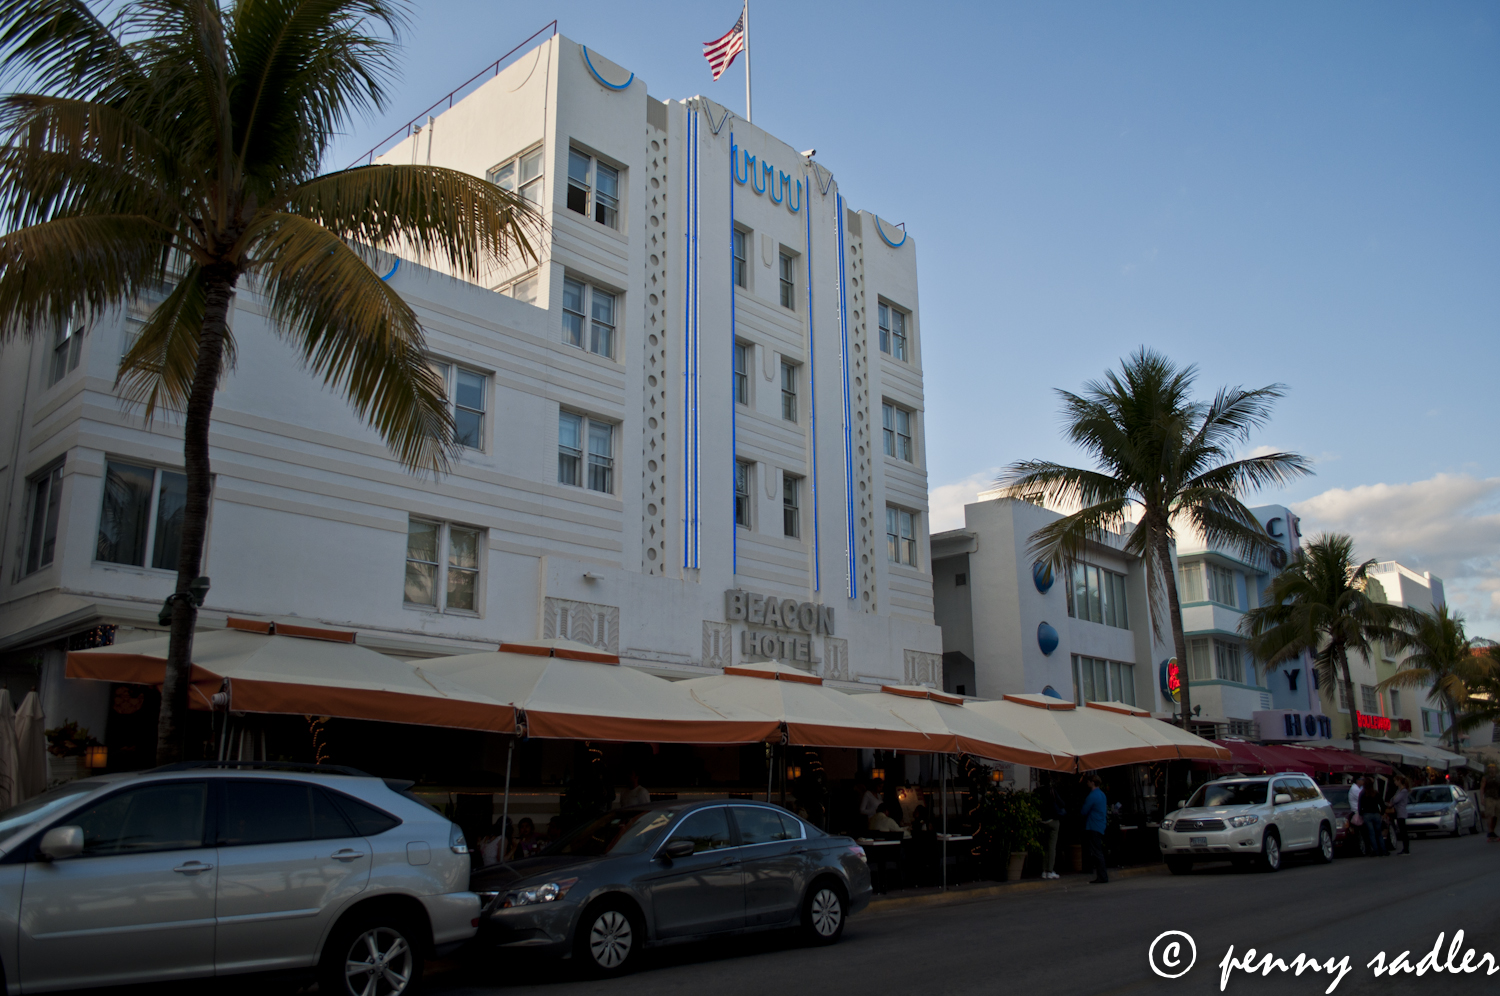 ocean drive, miami, Art Deco architecture